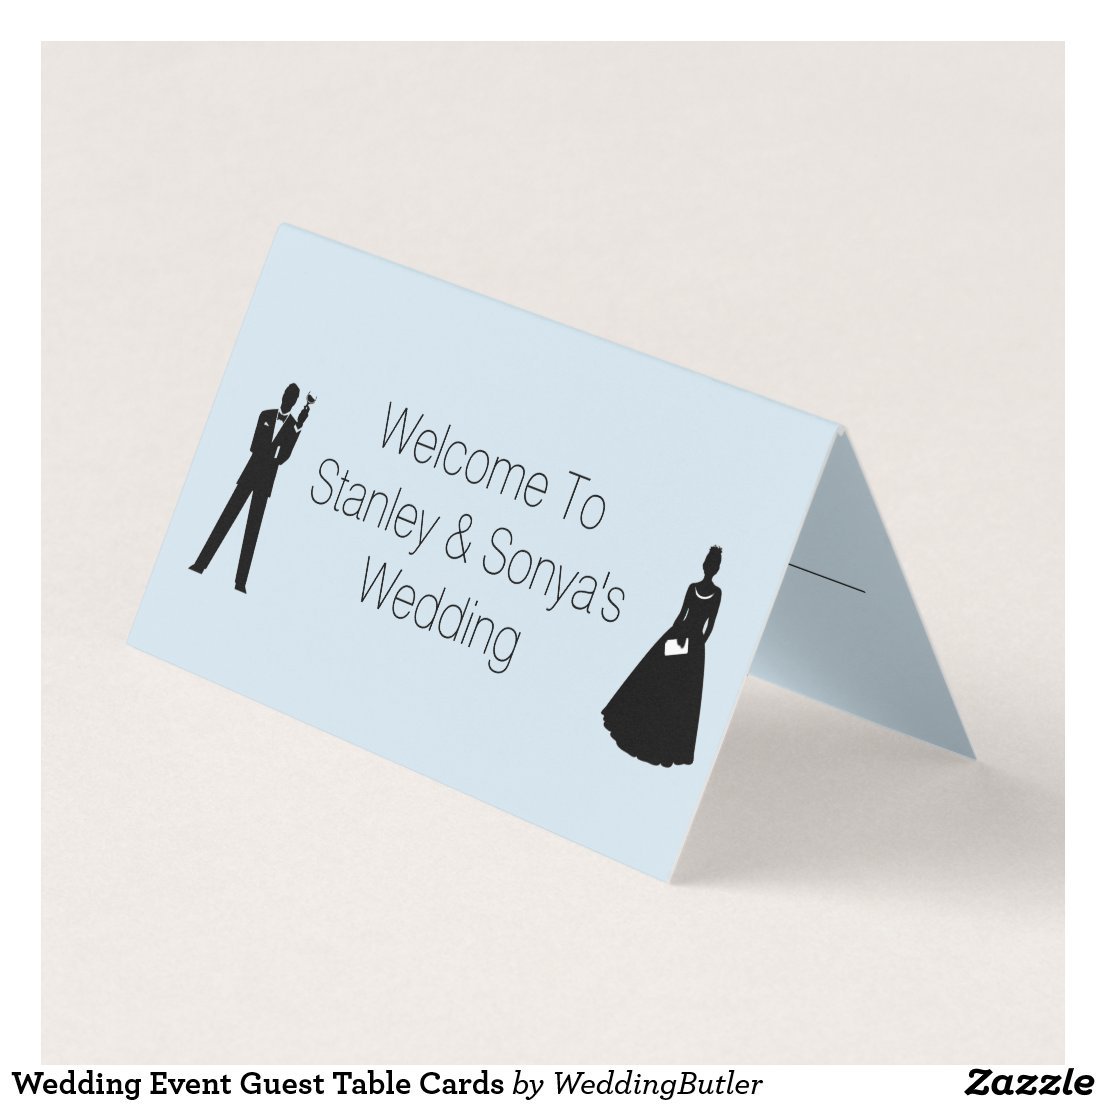 Wedding Event Guest Table Cards